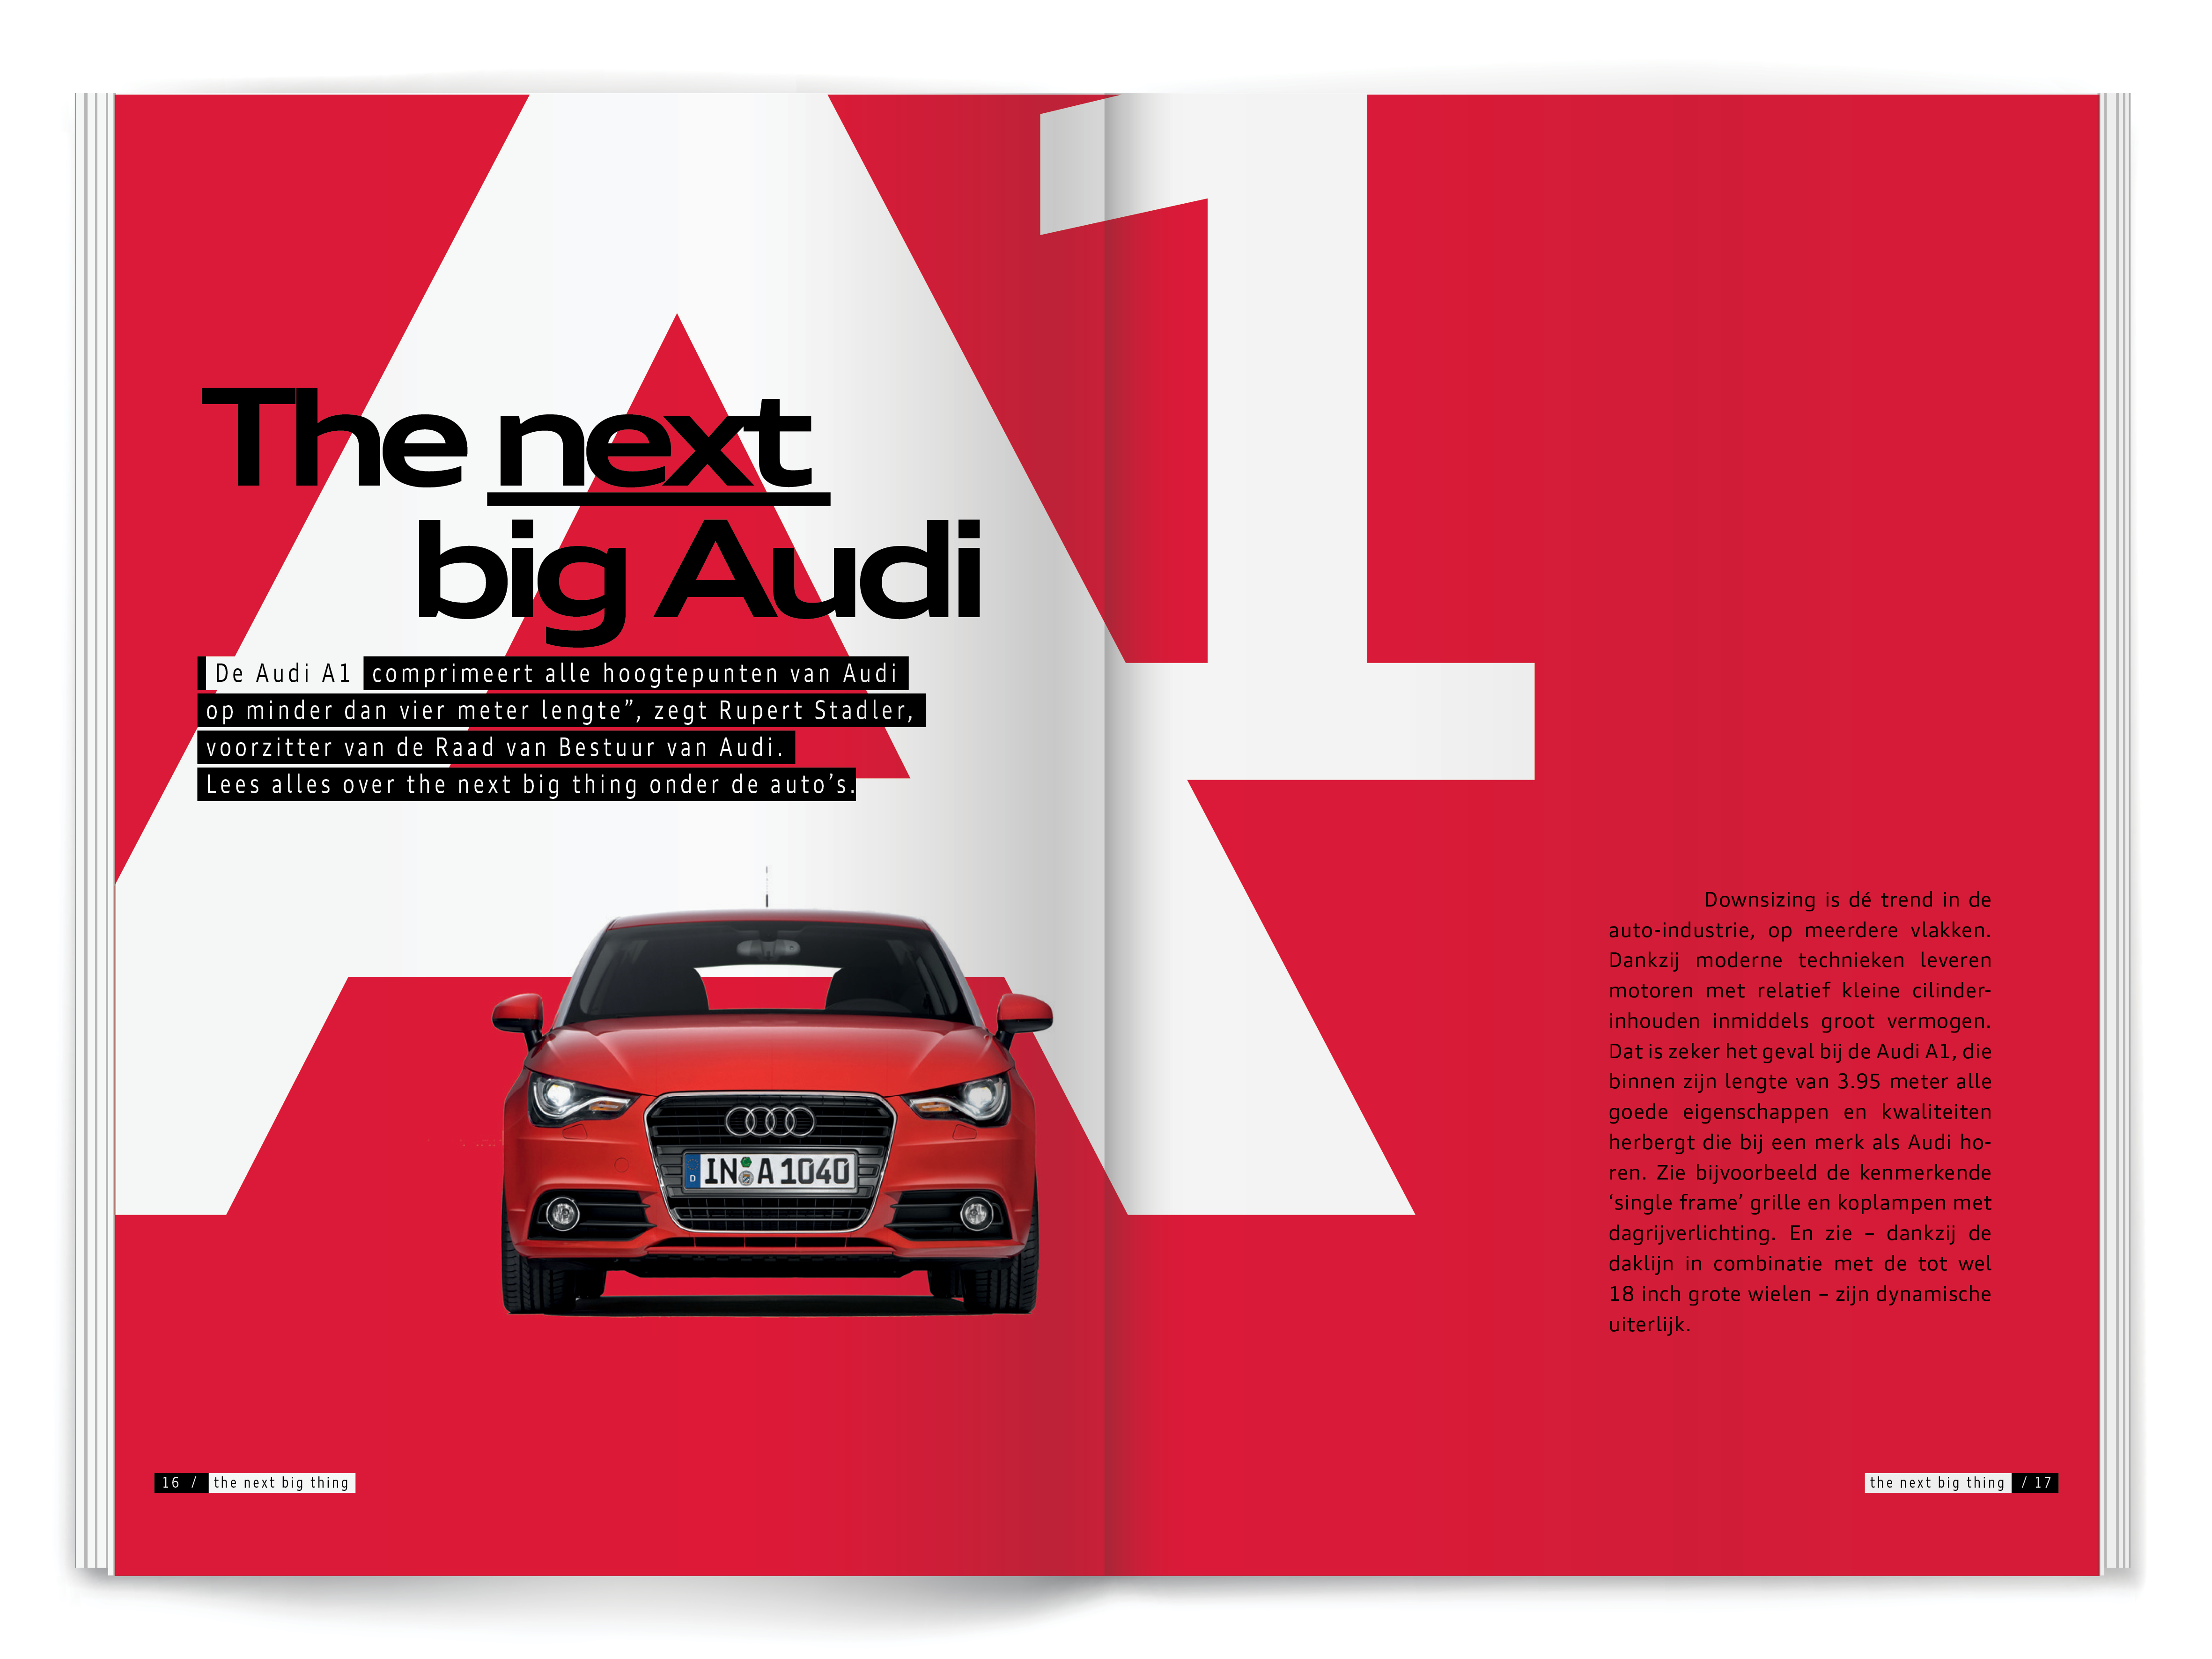 AUDI The next big thing 2/12